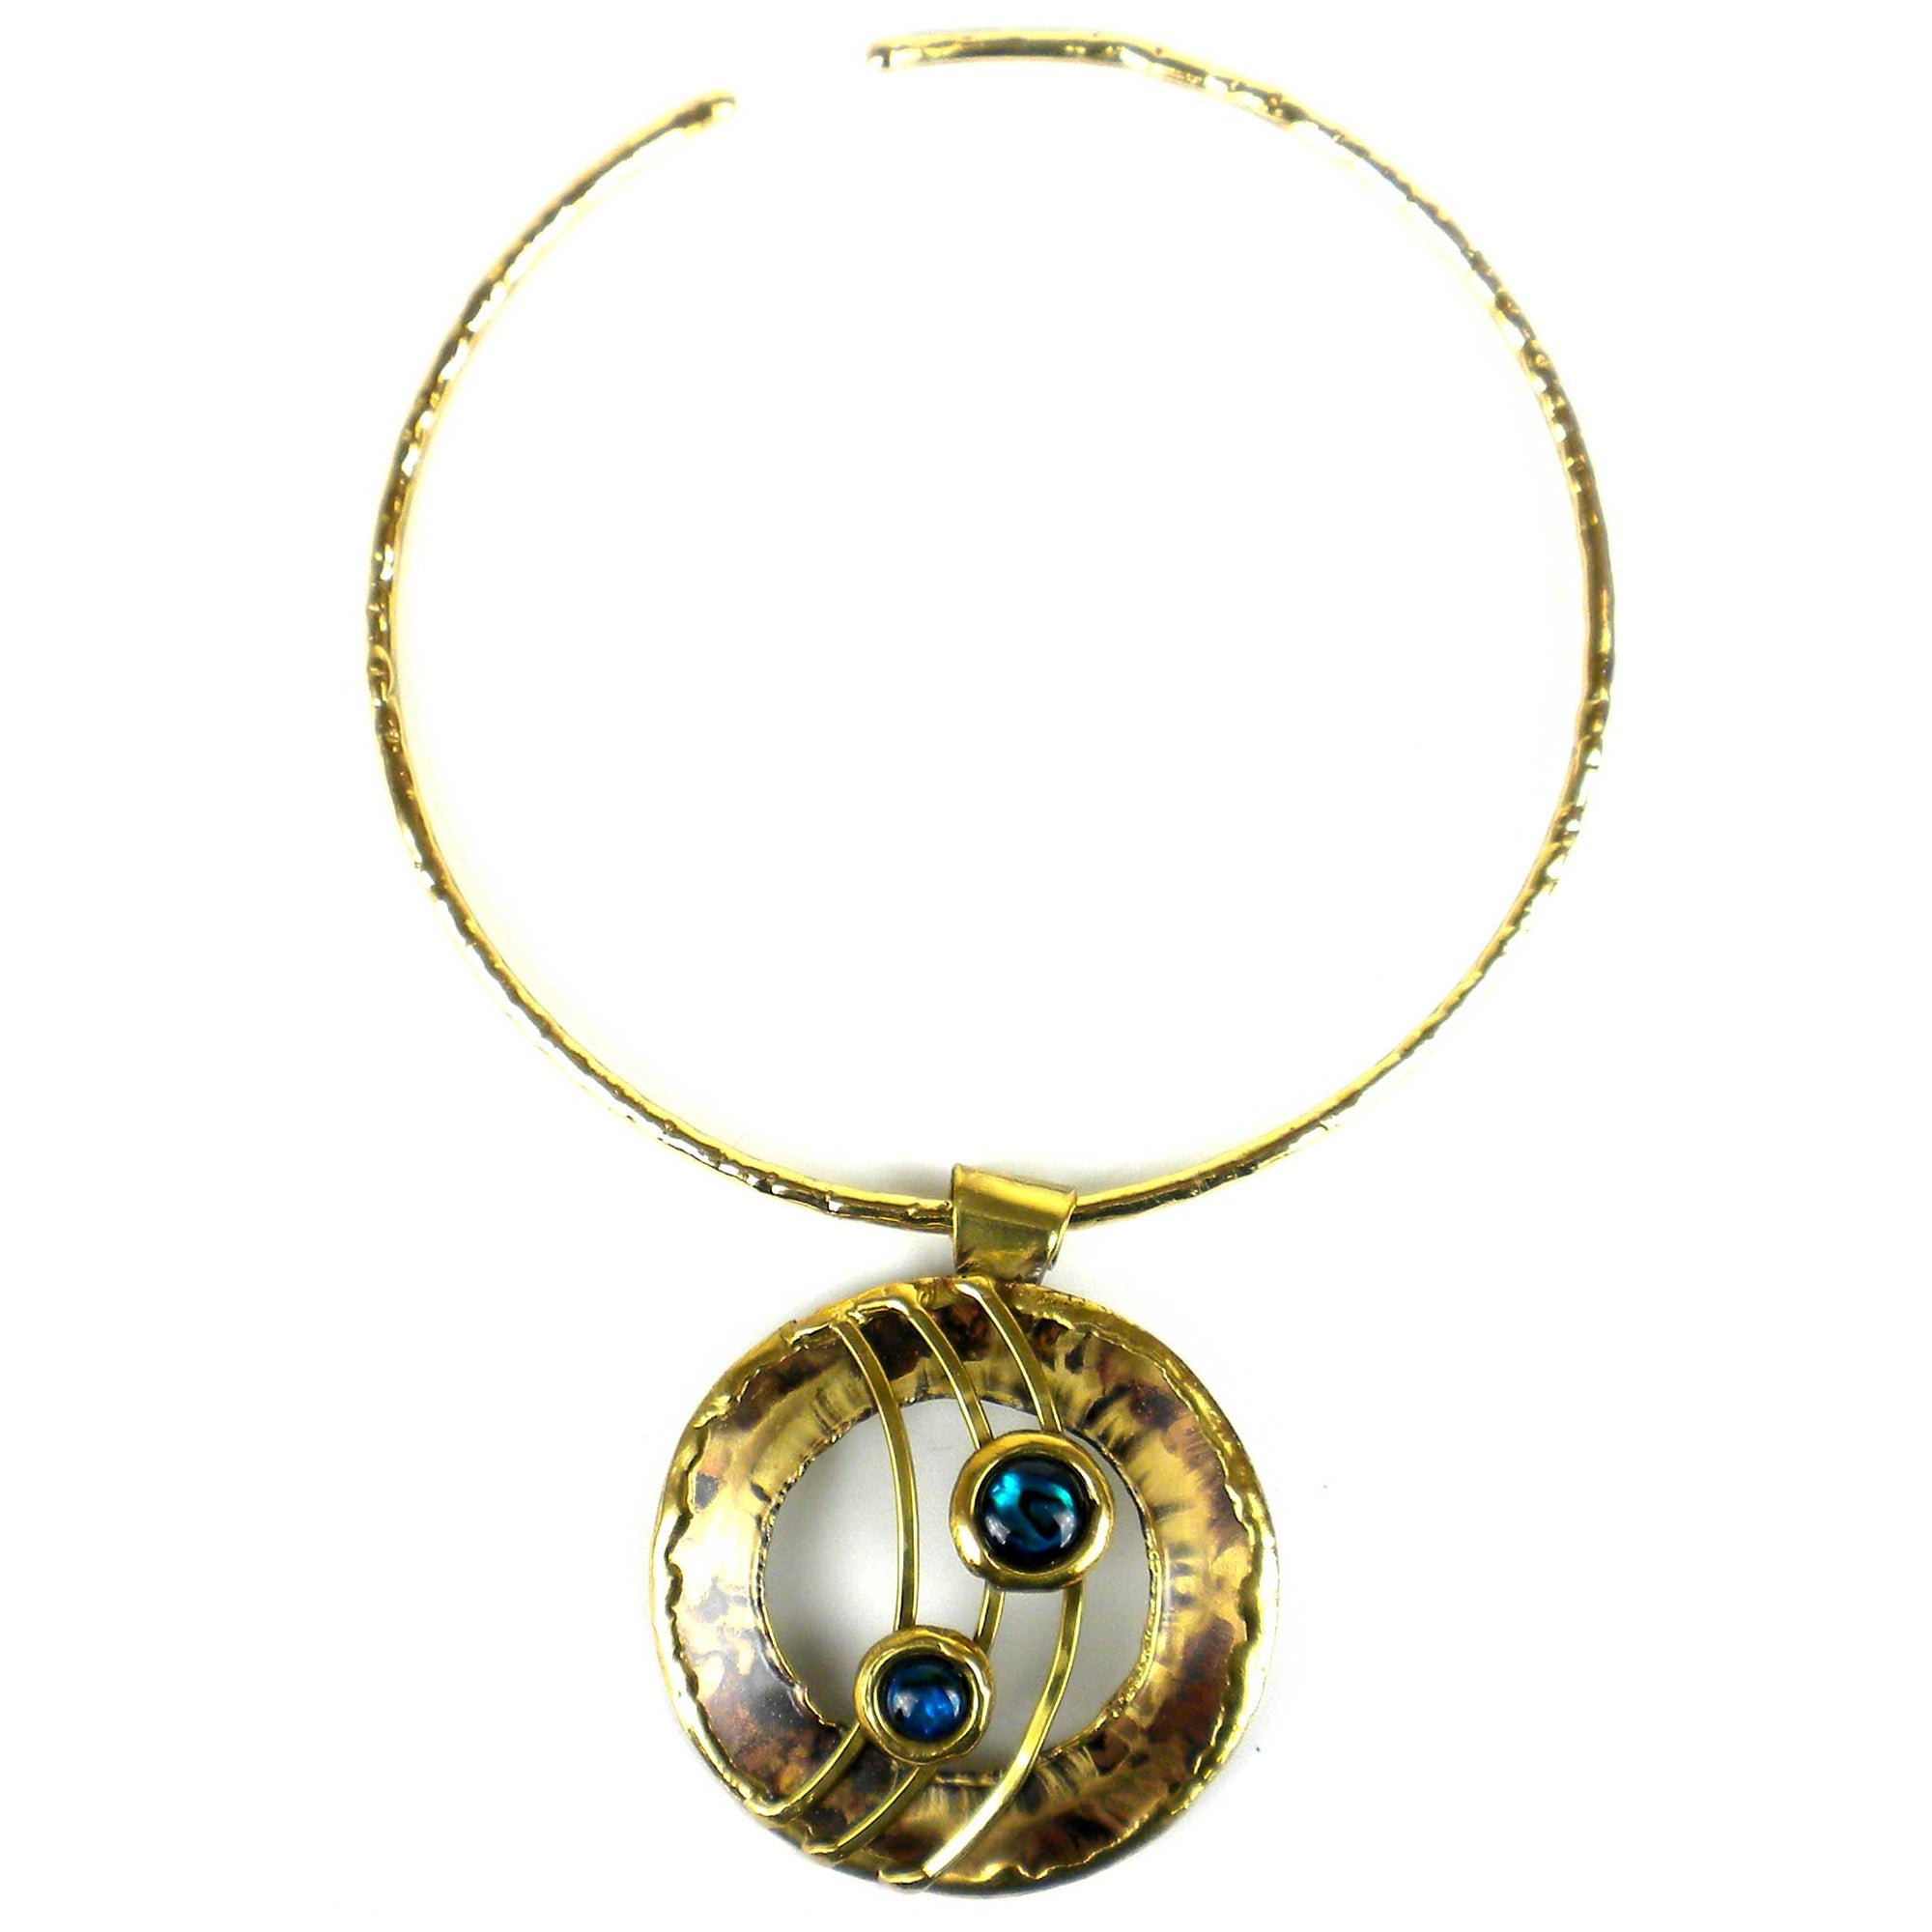 Ripple Effect Paua Shell and Brass Pendant  Necklace